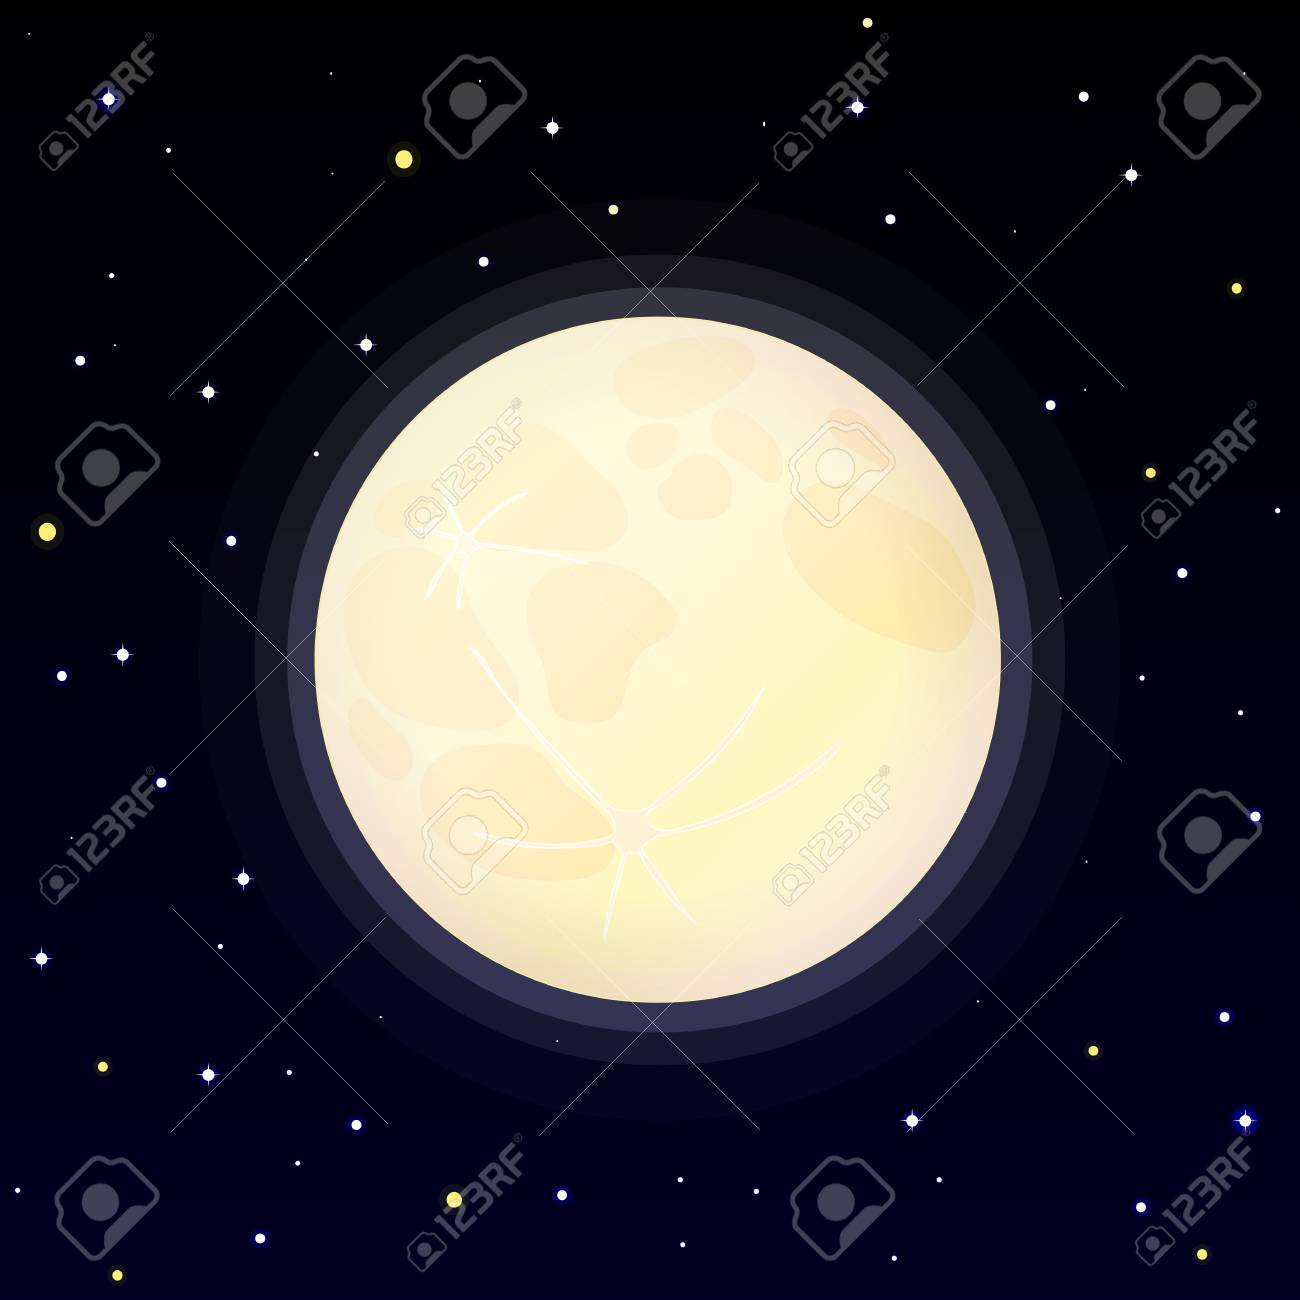 vector cartoon full moon phase  Luna, moonlight, celestial, crater,